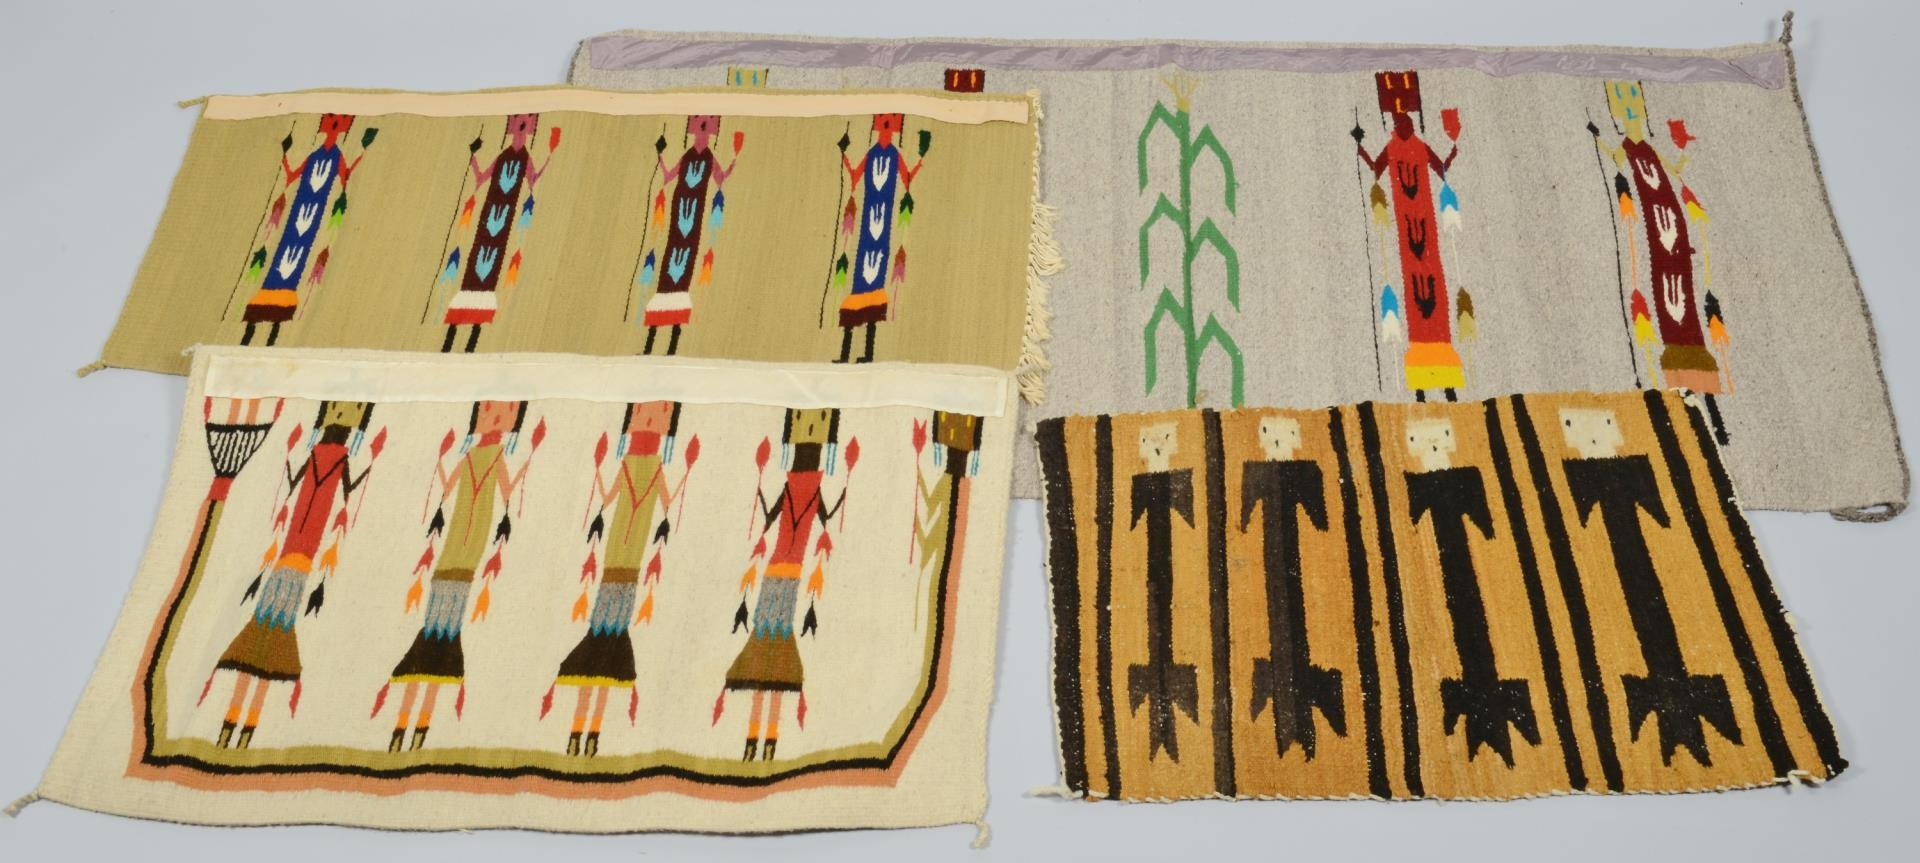 Lot 3383268: Native American Art and Rugs